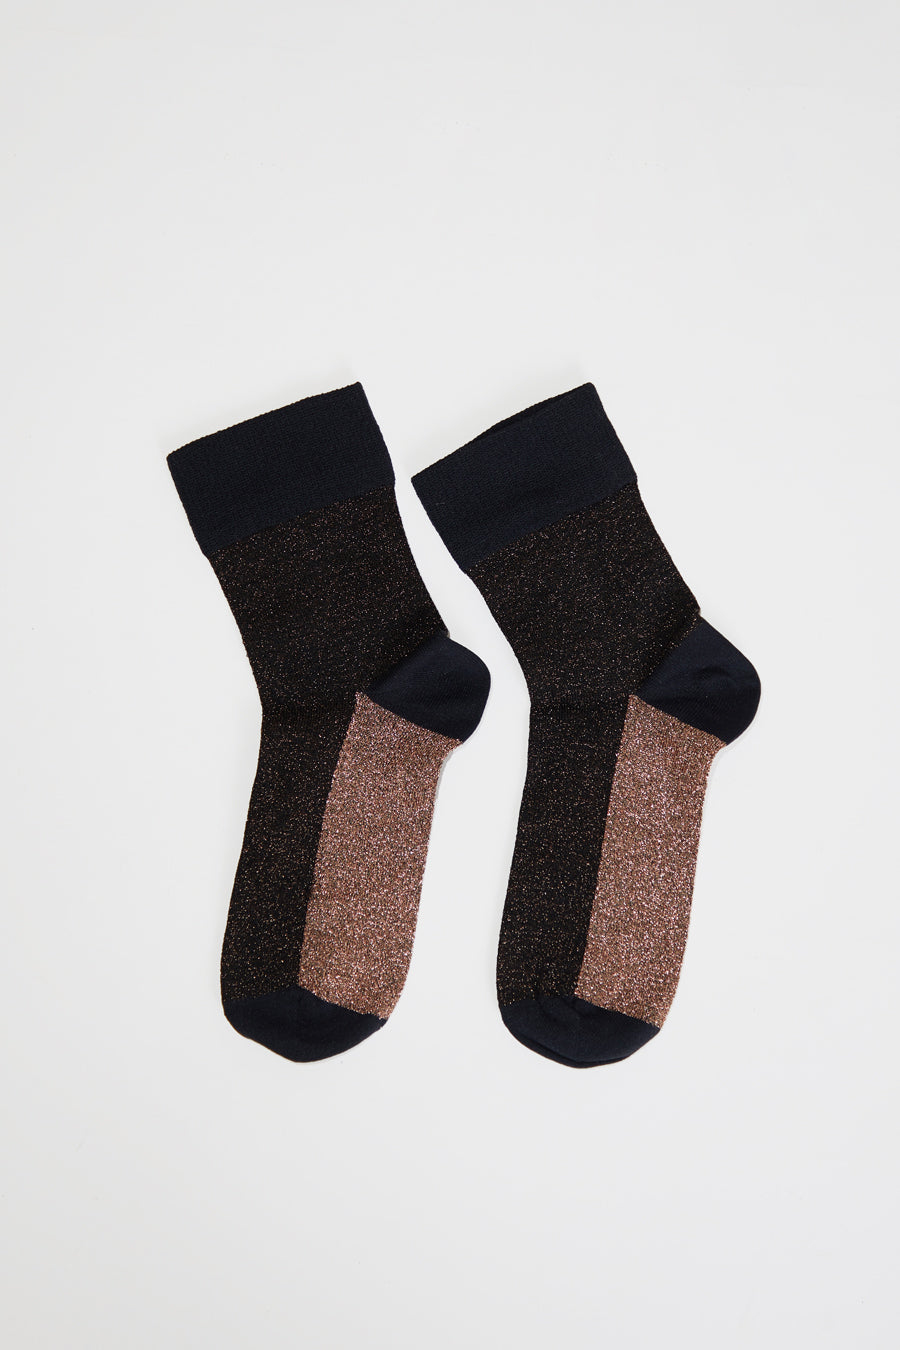 Polder Arcando Colorblock Socks in Brown